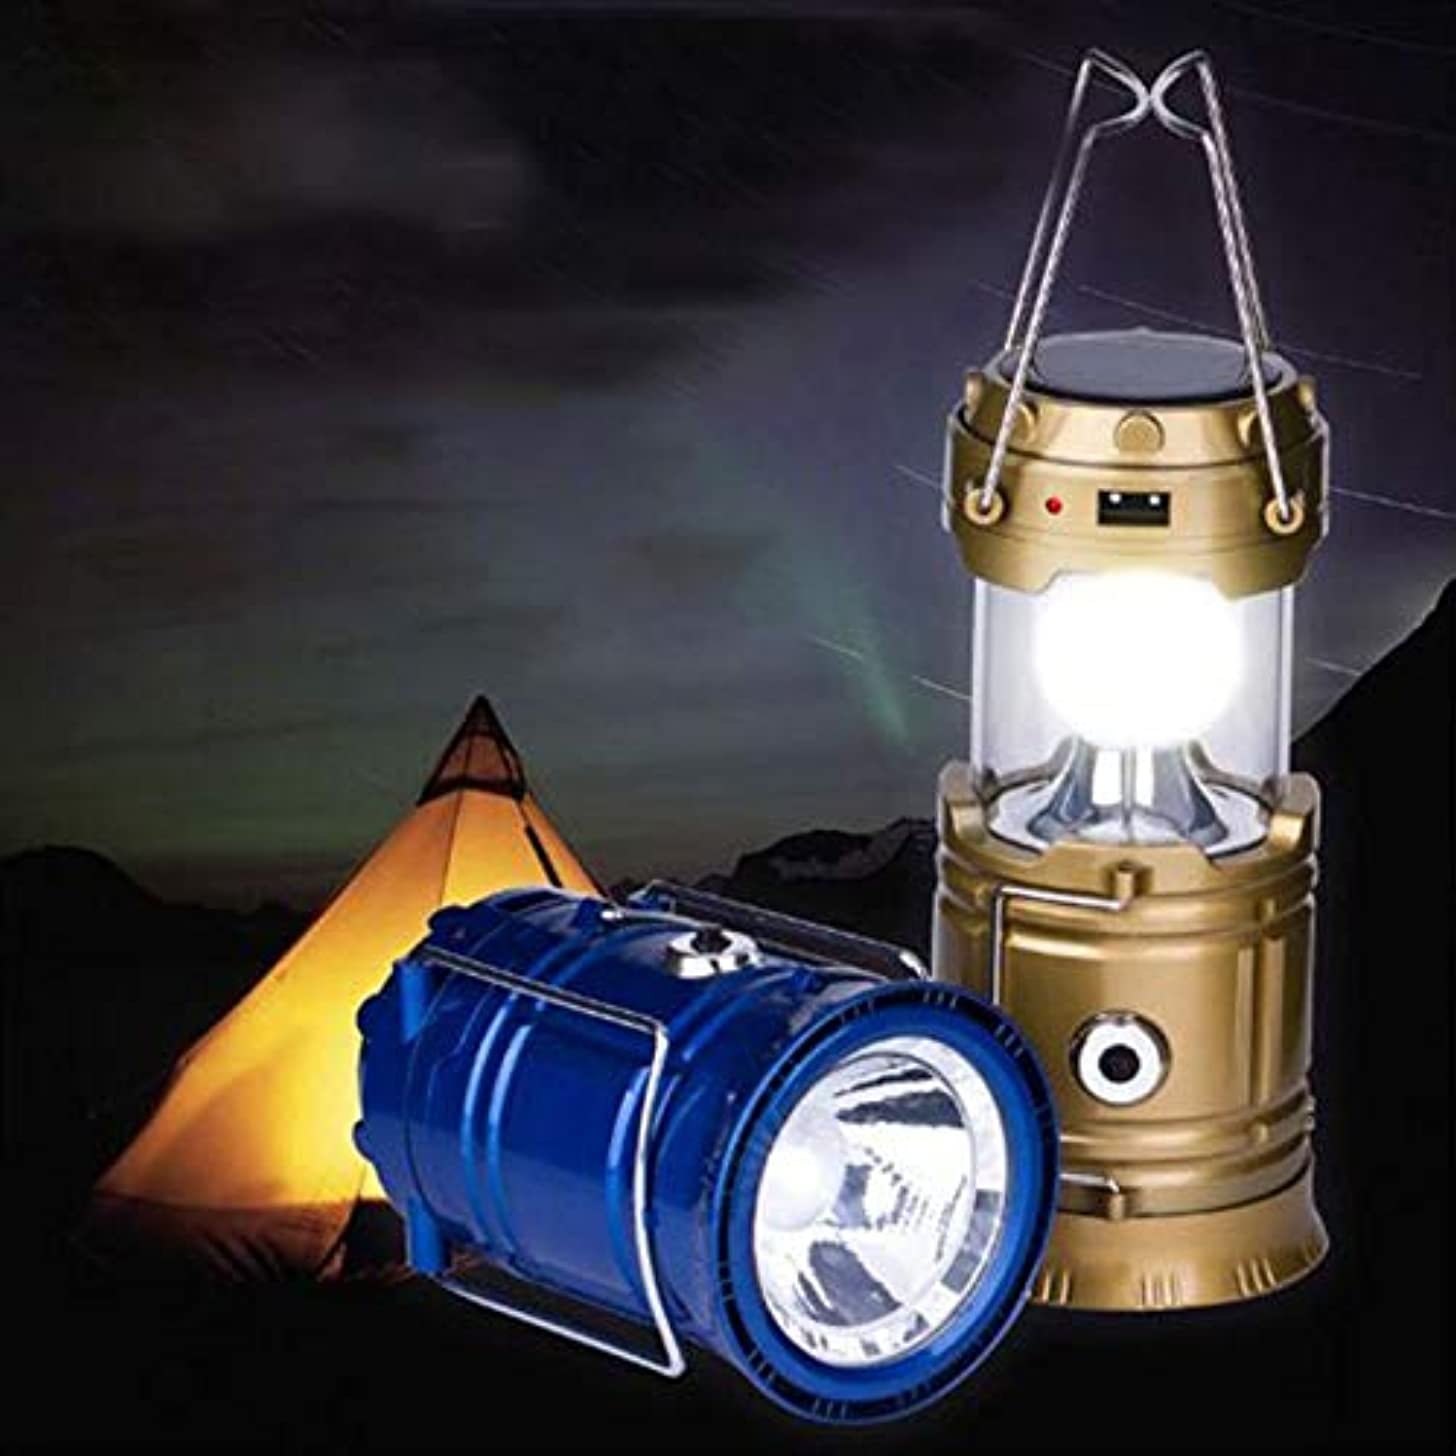 AXDZ Solar Powered Portable Stage Flashlight Retractable Flame Rechargeable Solar Lantern Lights Flame